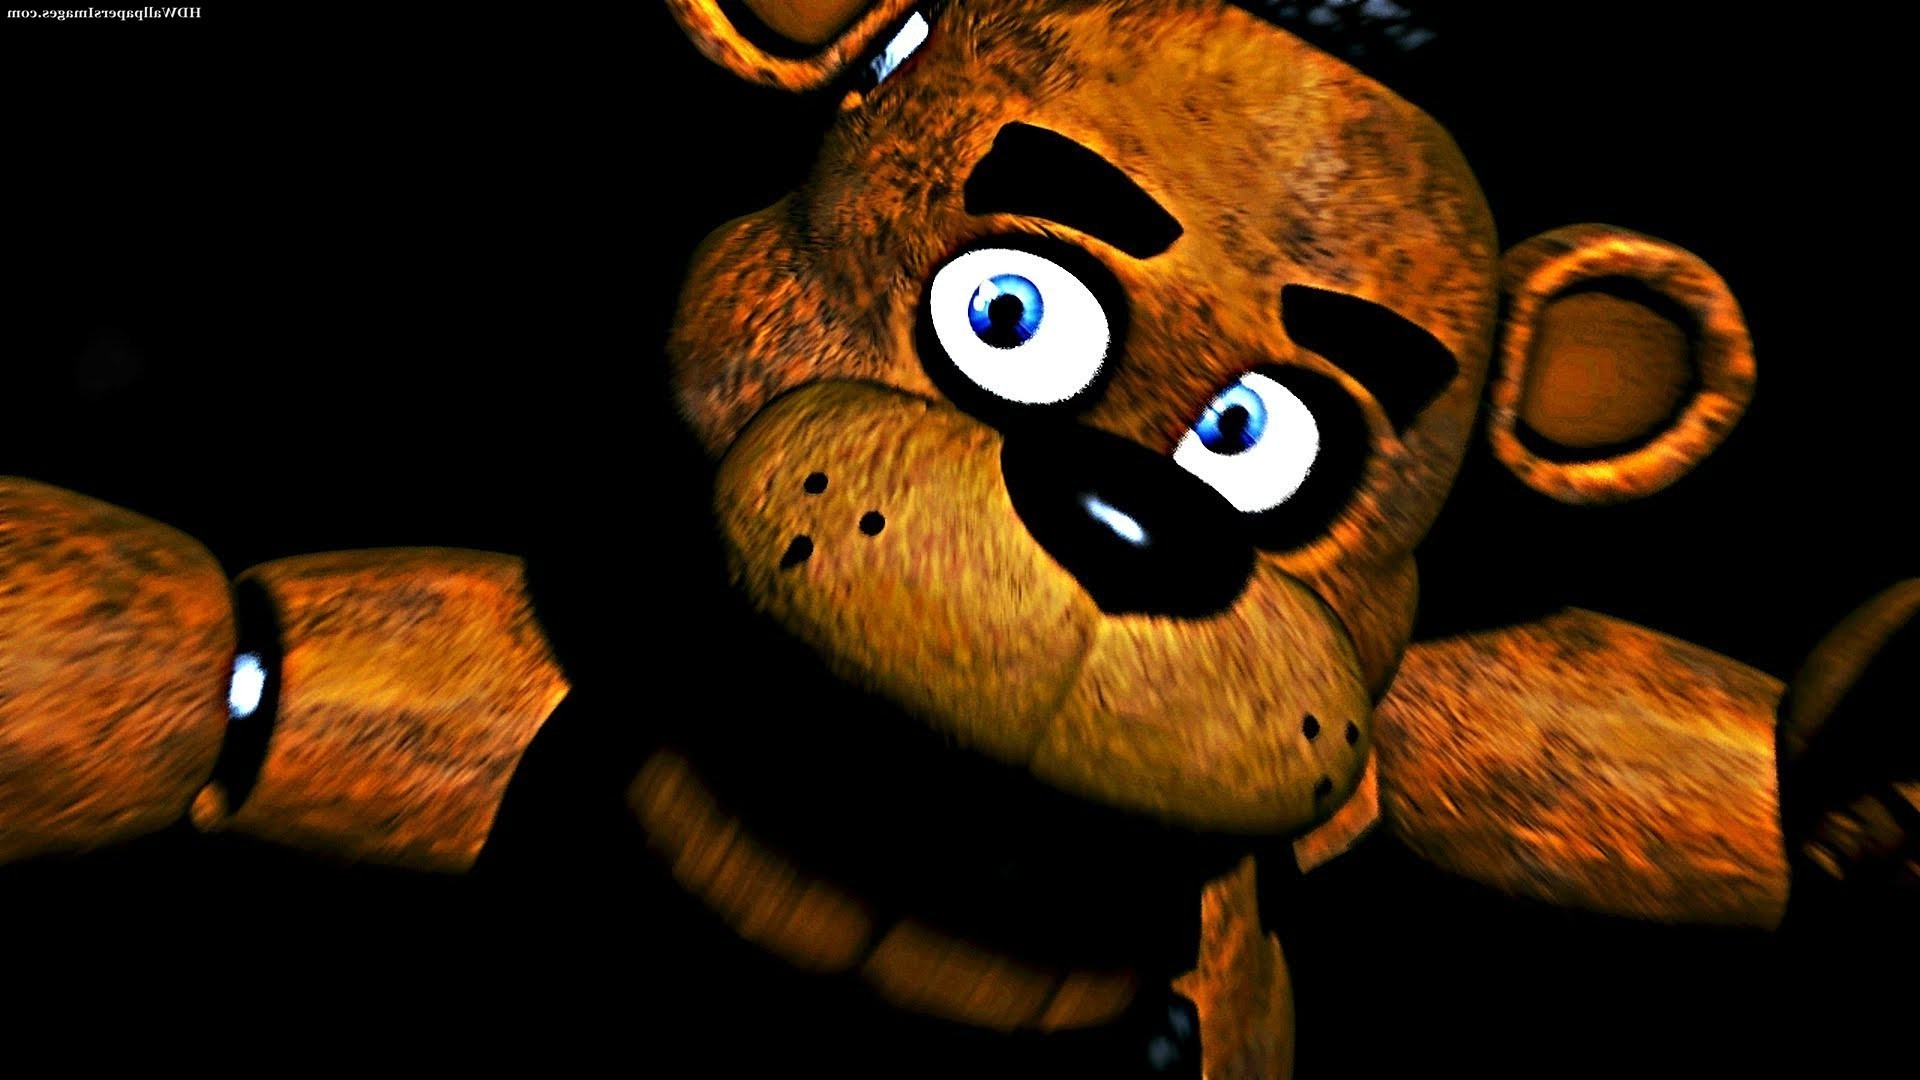 1920x1080 Five Nights At Freddys, Video Games, Animals, Stuffed Animals, Freddy  Fazbear Wallpapers HD / Desktop and Mobile Backgrounds